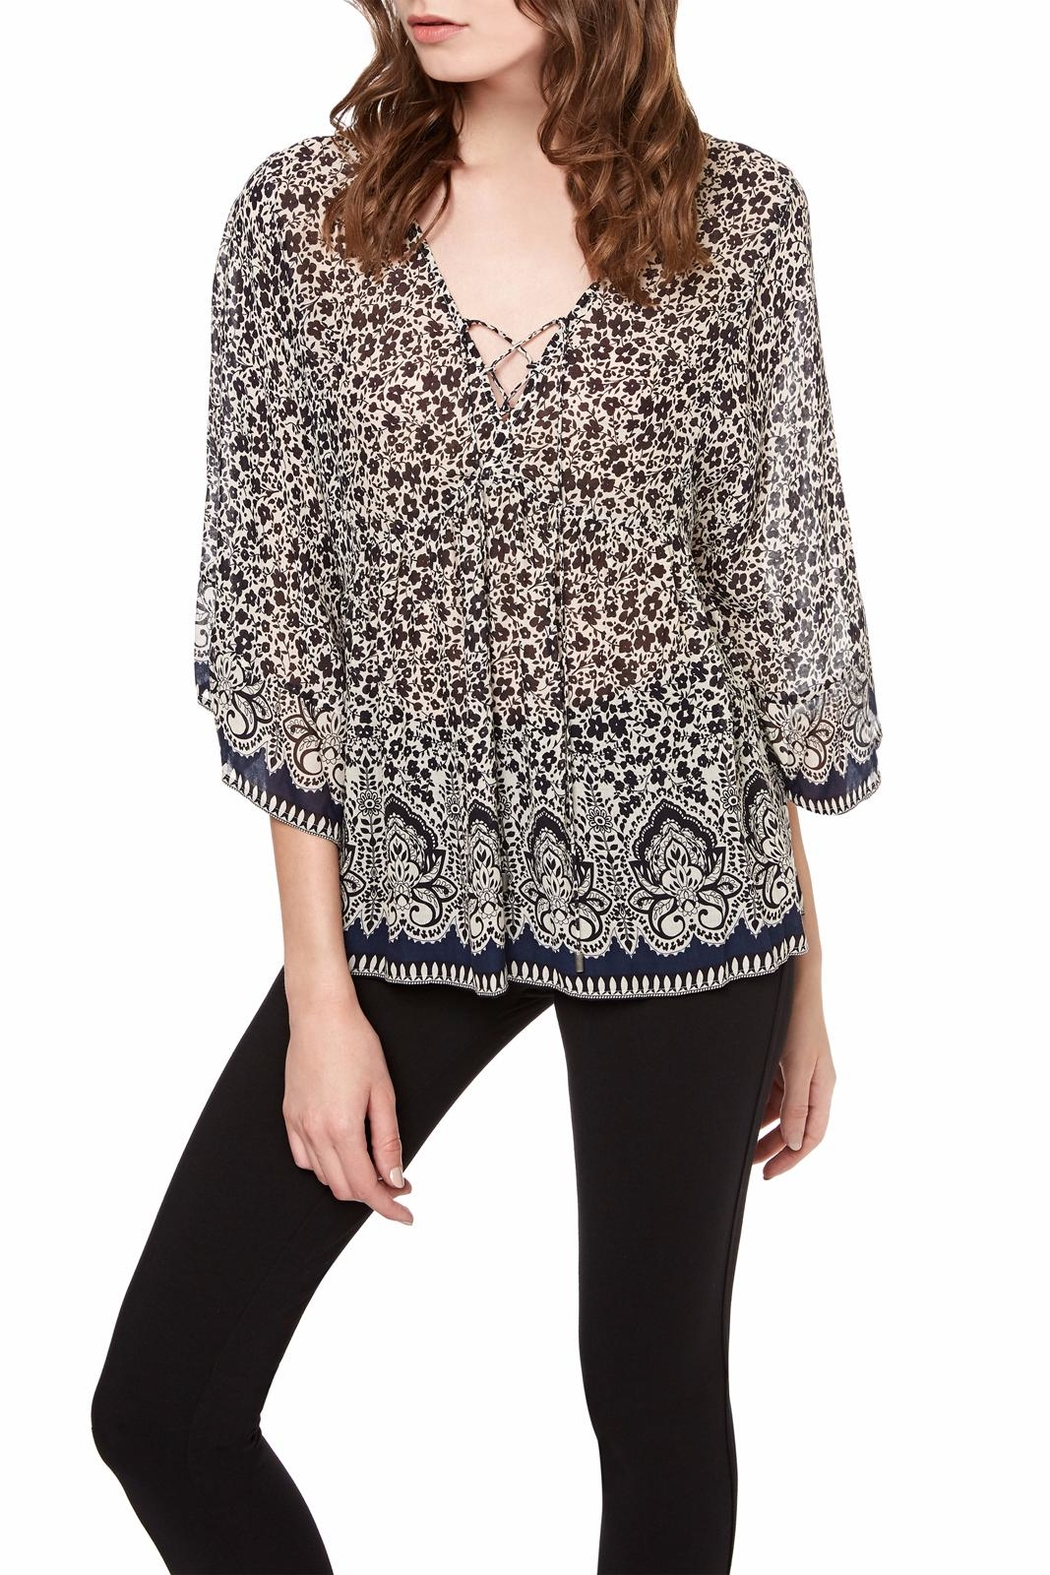 Sanctuary Lila Lace Up TOp - Main Image